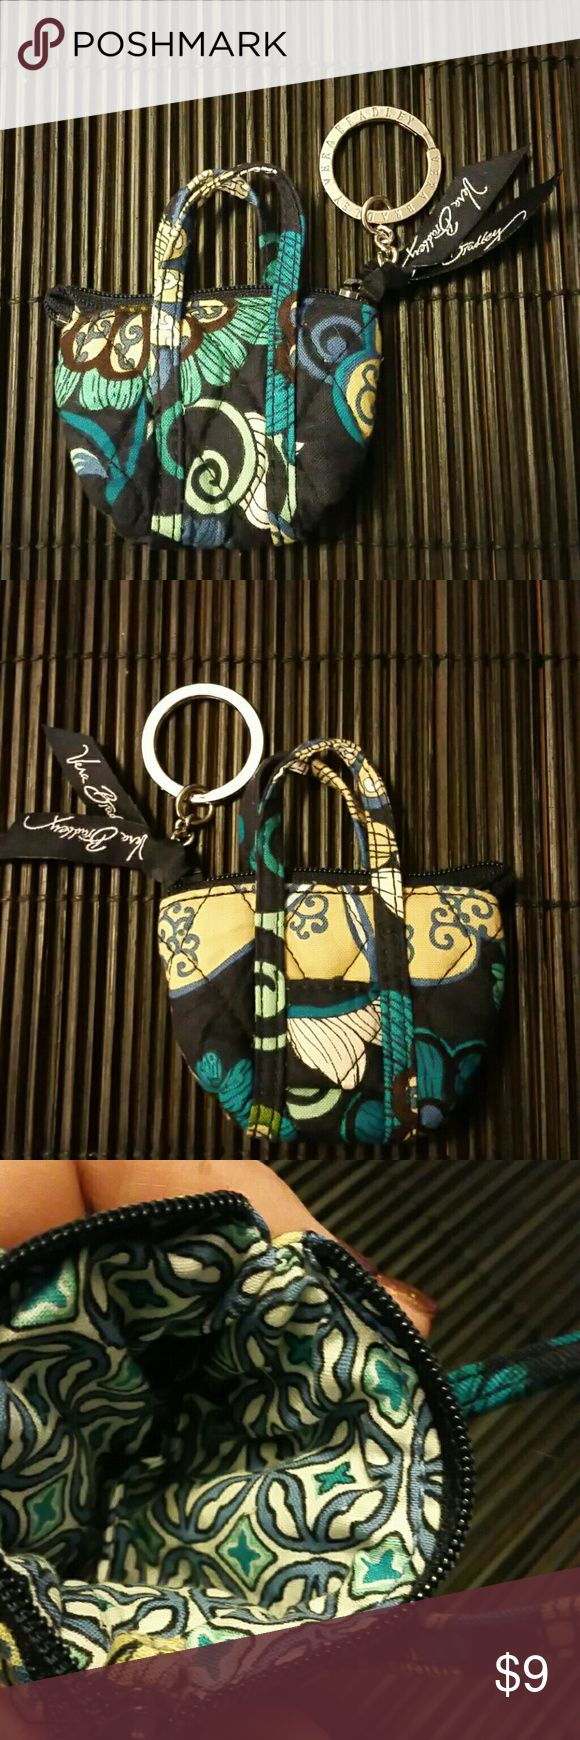 """Vera Bradley Tote Bag Keychain Key Ring Fob Retire Very good condition - retired print - 3"""" long at widest point - 4"""" tall including handles Vera Bradley Bags Wallets"""